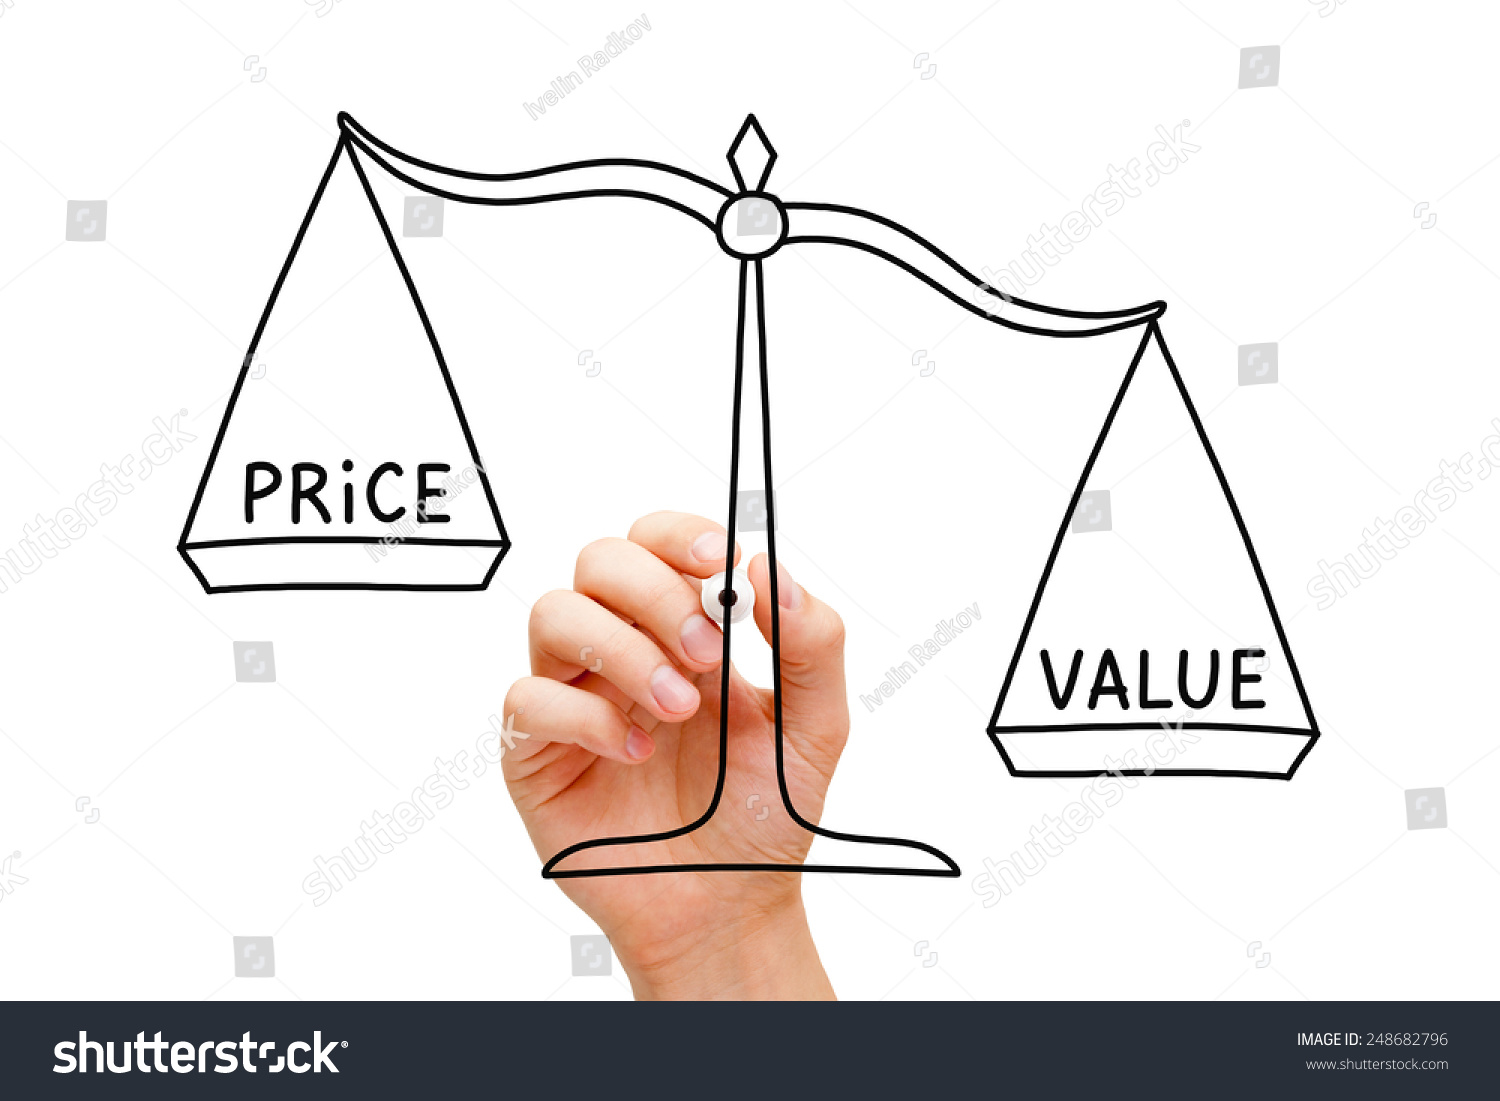 Hand Drawing Value Price Scale Concept Stock Photo 248682796 ...